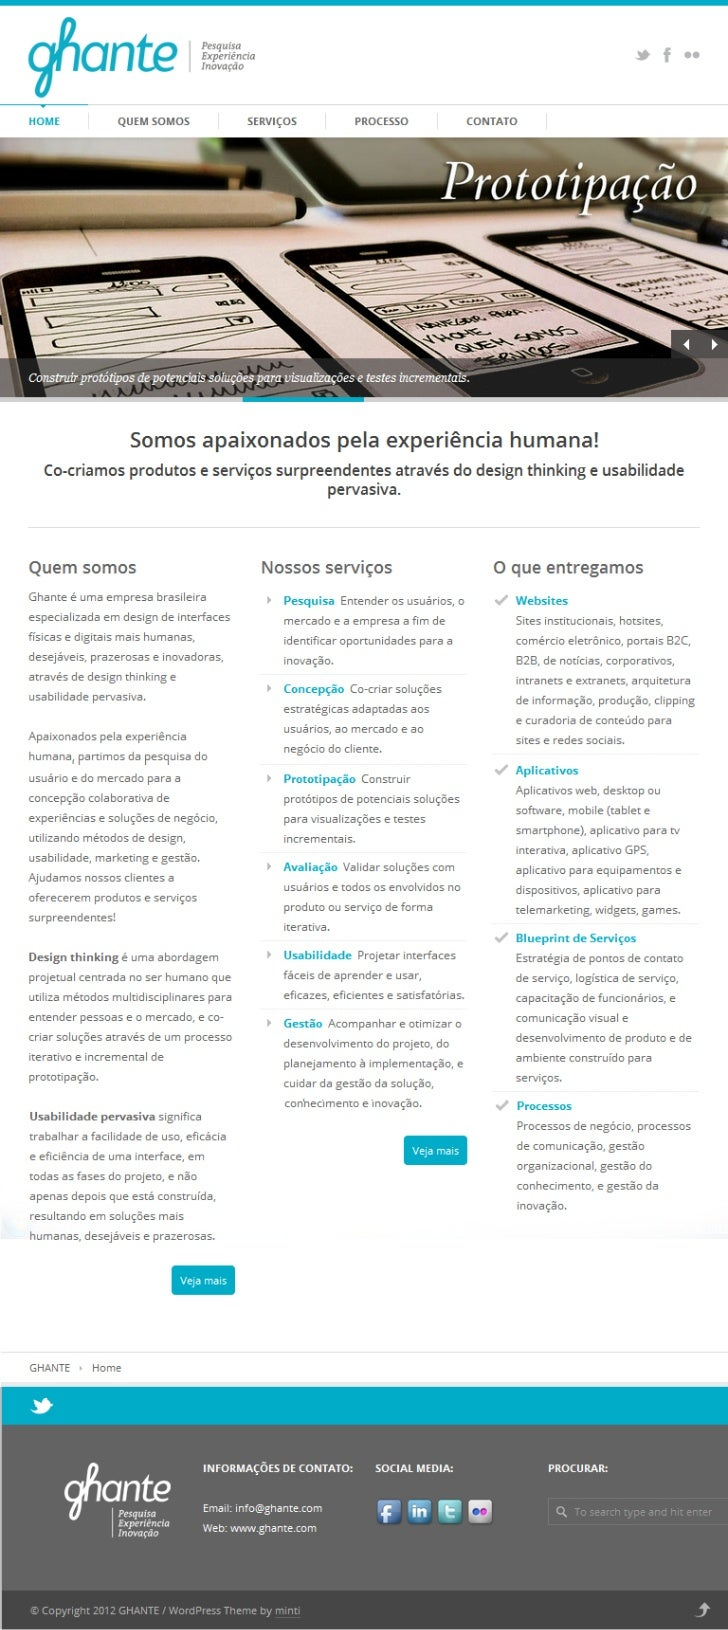 Ghante Research, Experience & Innovation Homepage